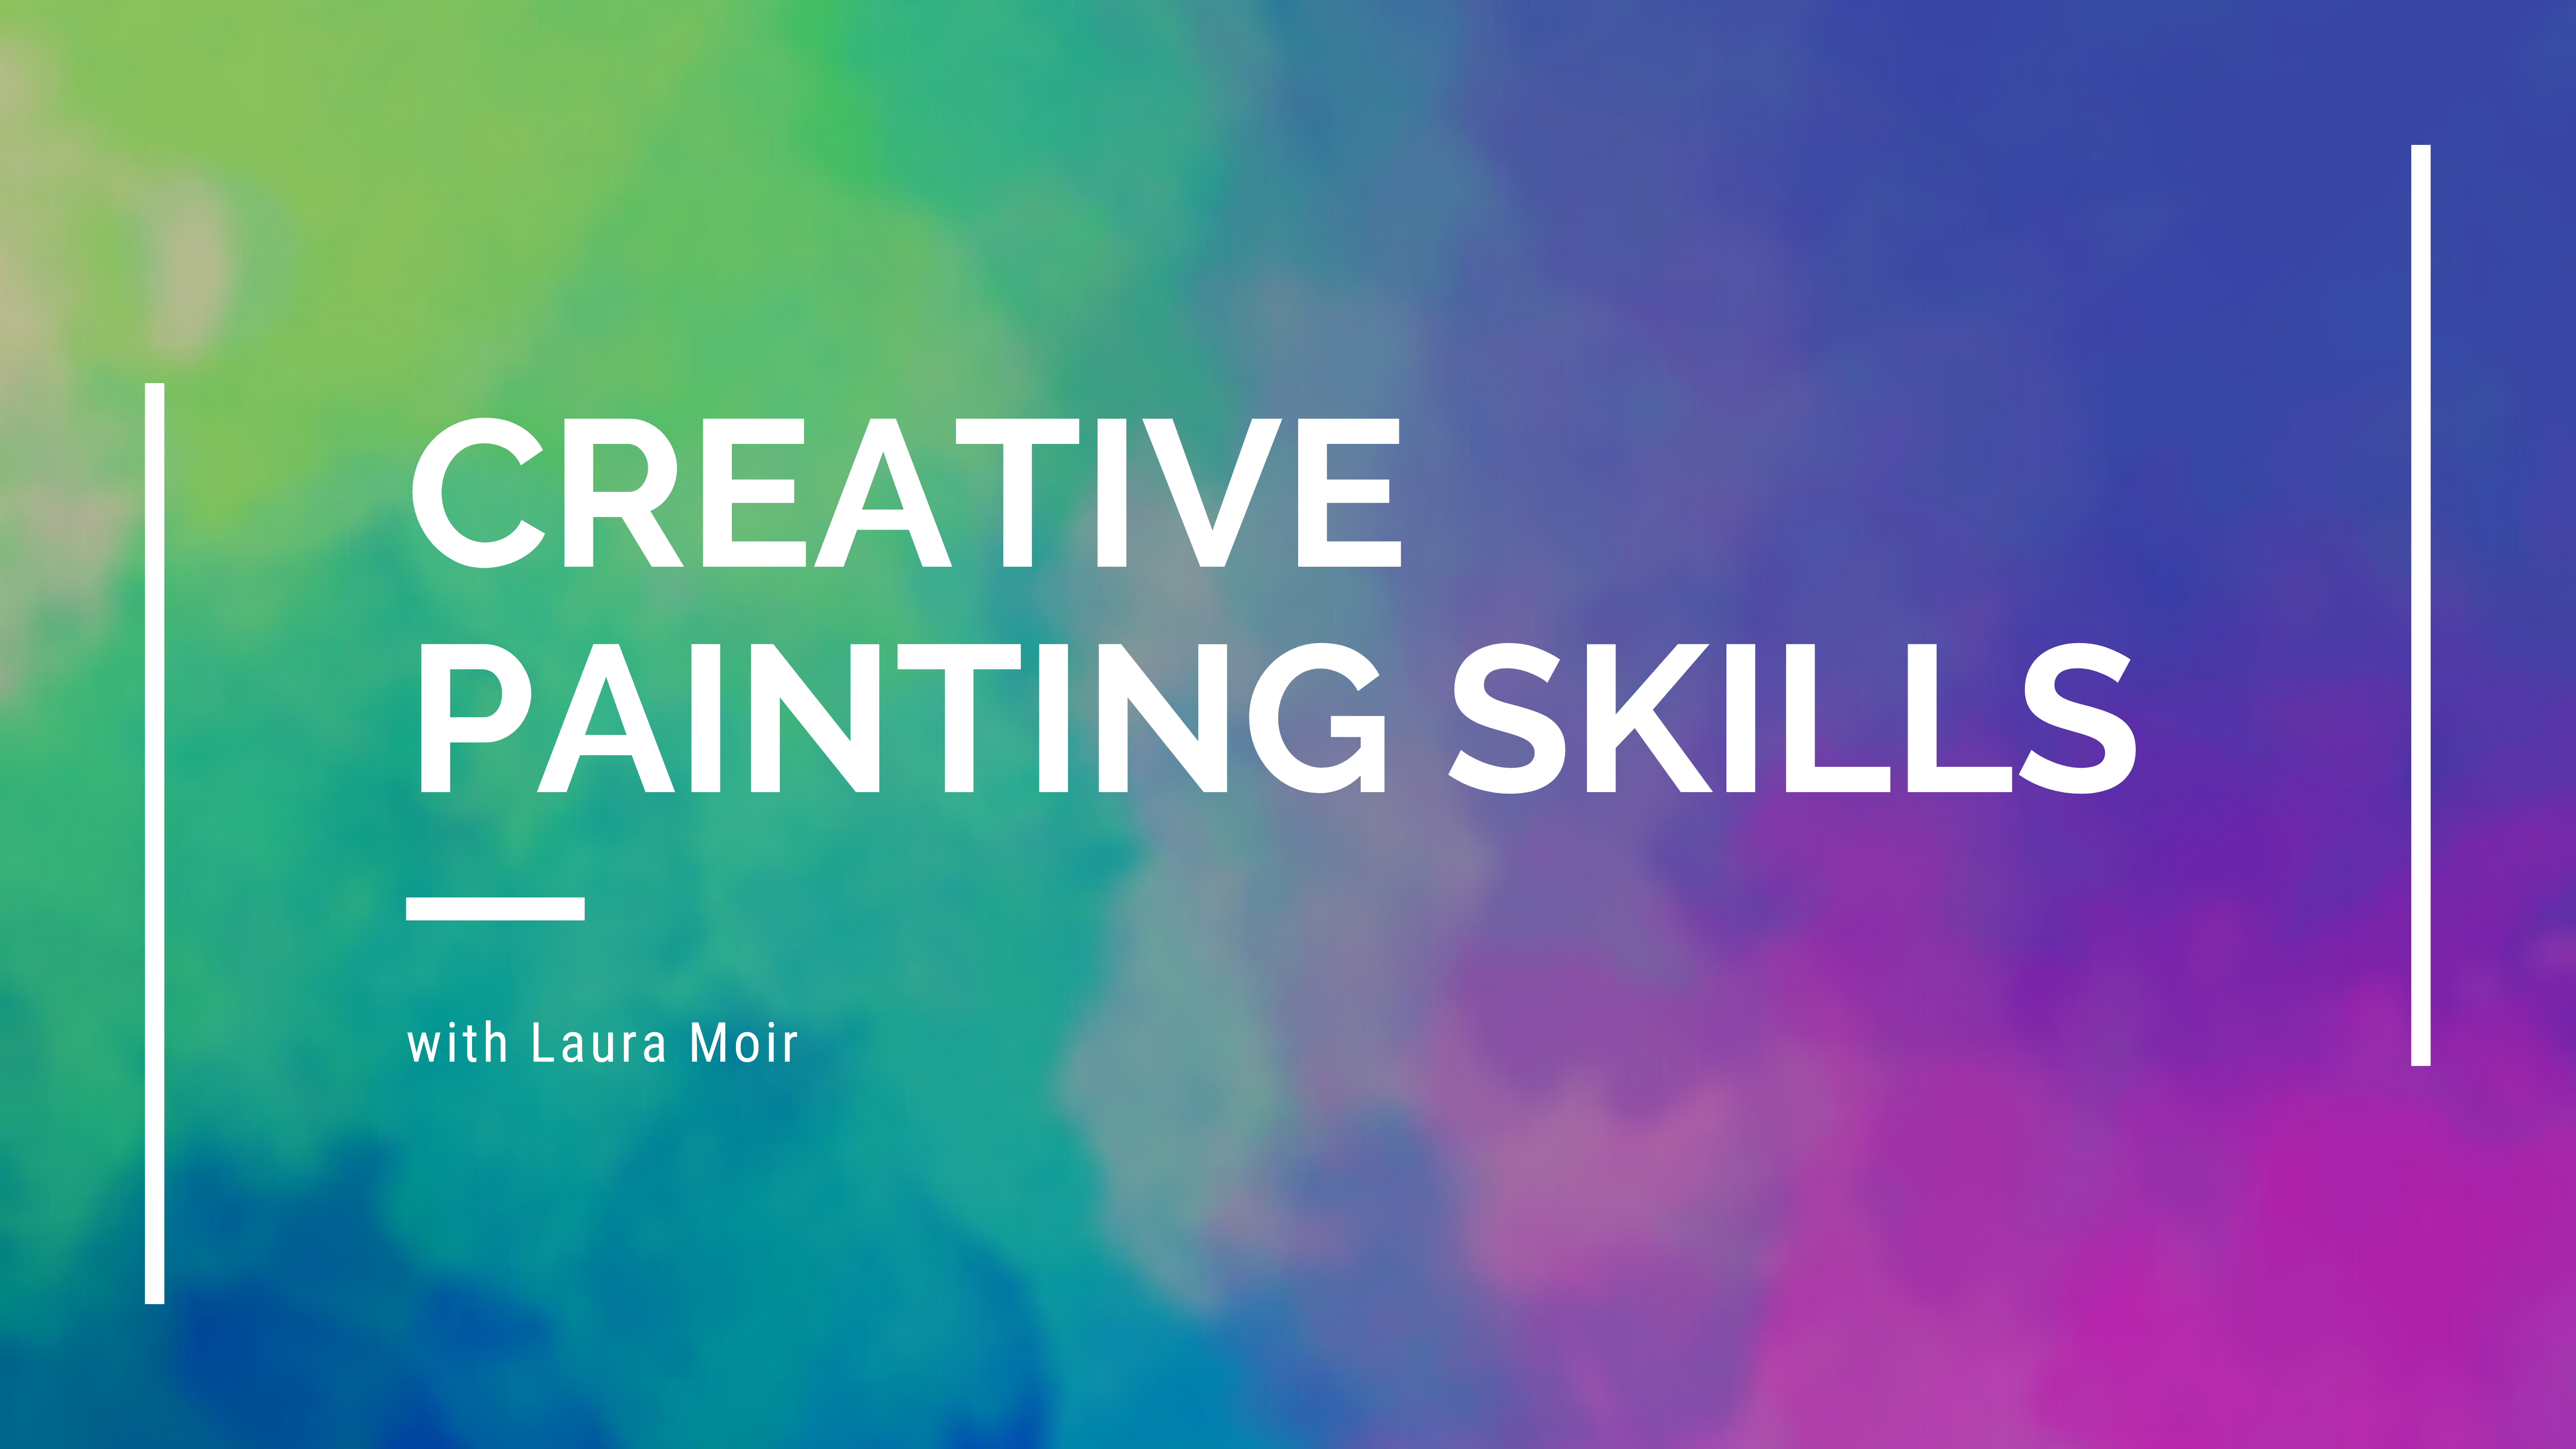 Creative Painting Skills with Laura Moir